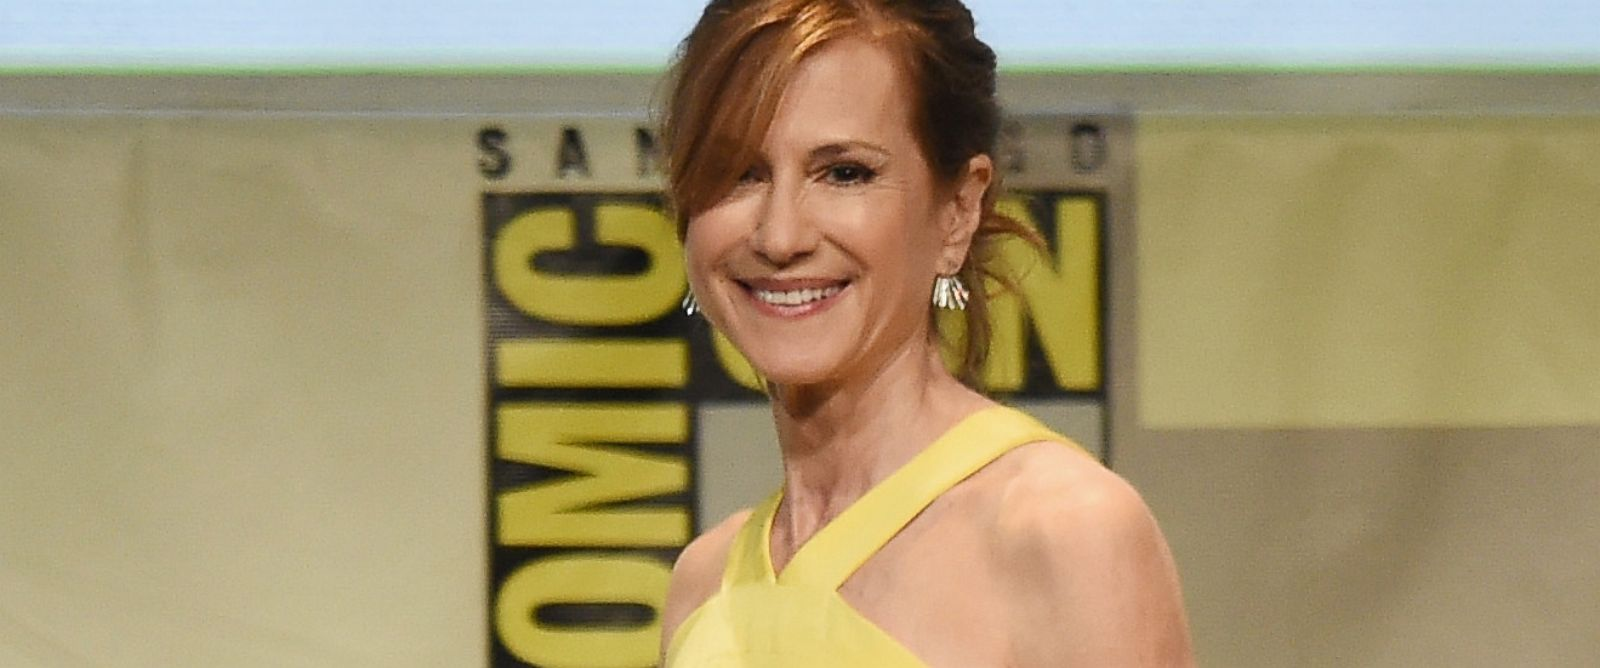 "PHOTO: Holly Hunter from ""Batman v. Superman: Dawn of Justice"" attends the Warner Bros. presentation during Comic-Con International 2015 at the San Diego Convention Center on July 11, 2015 in San Diego, Calif."